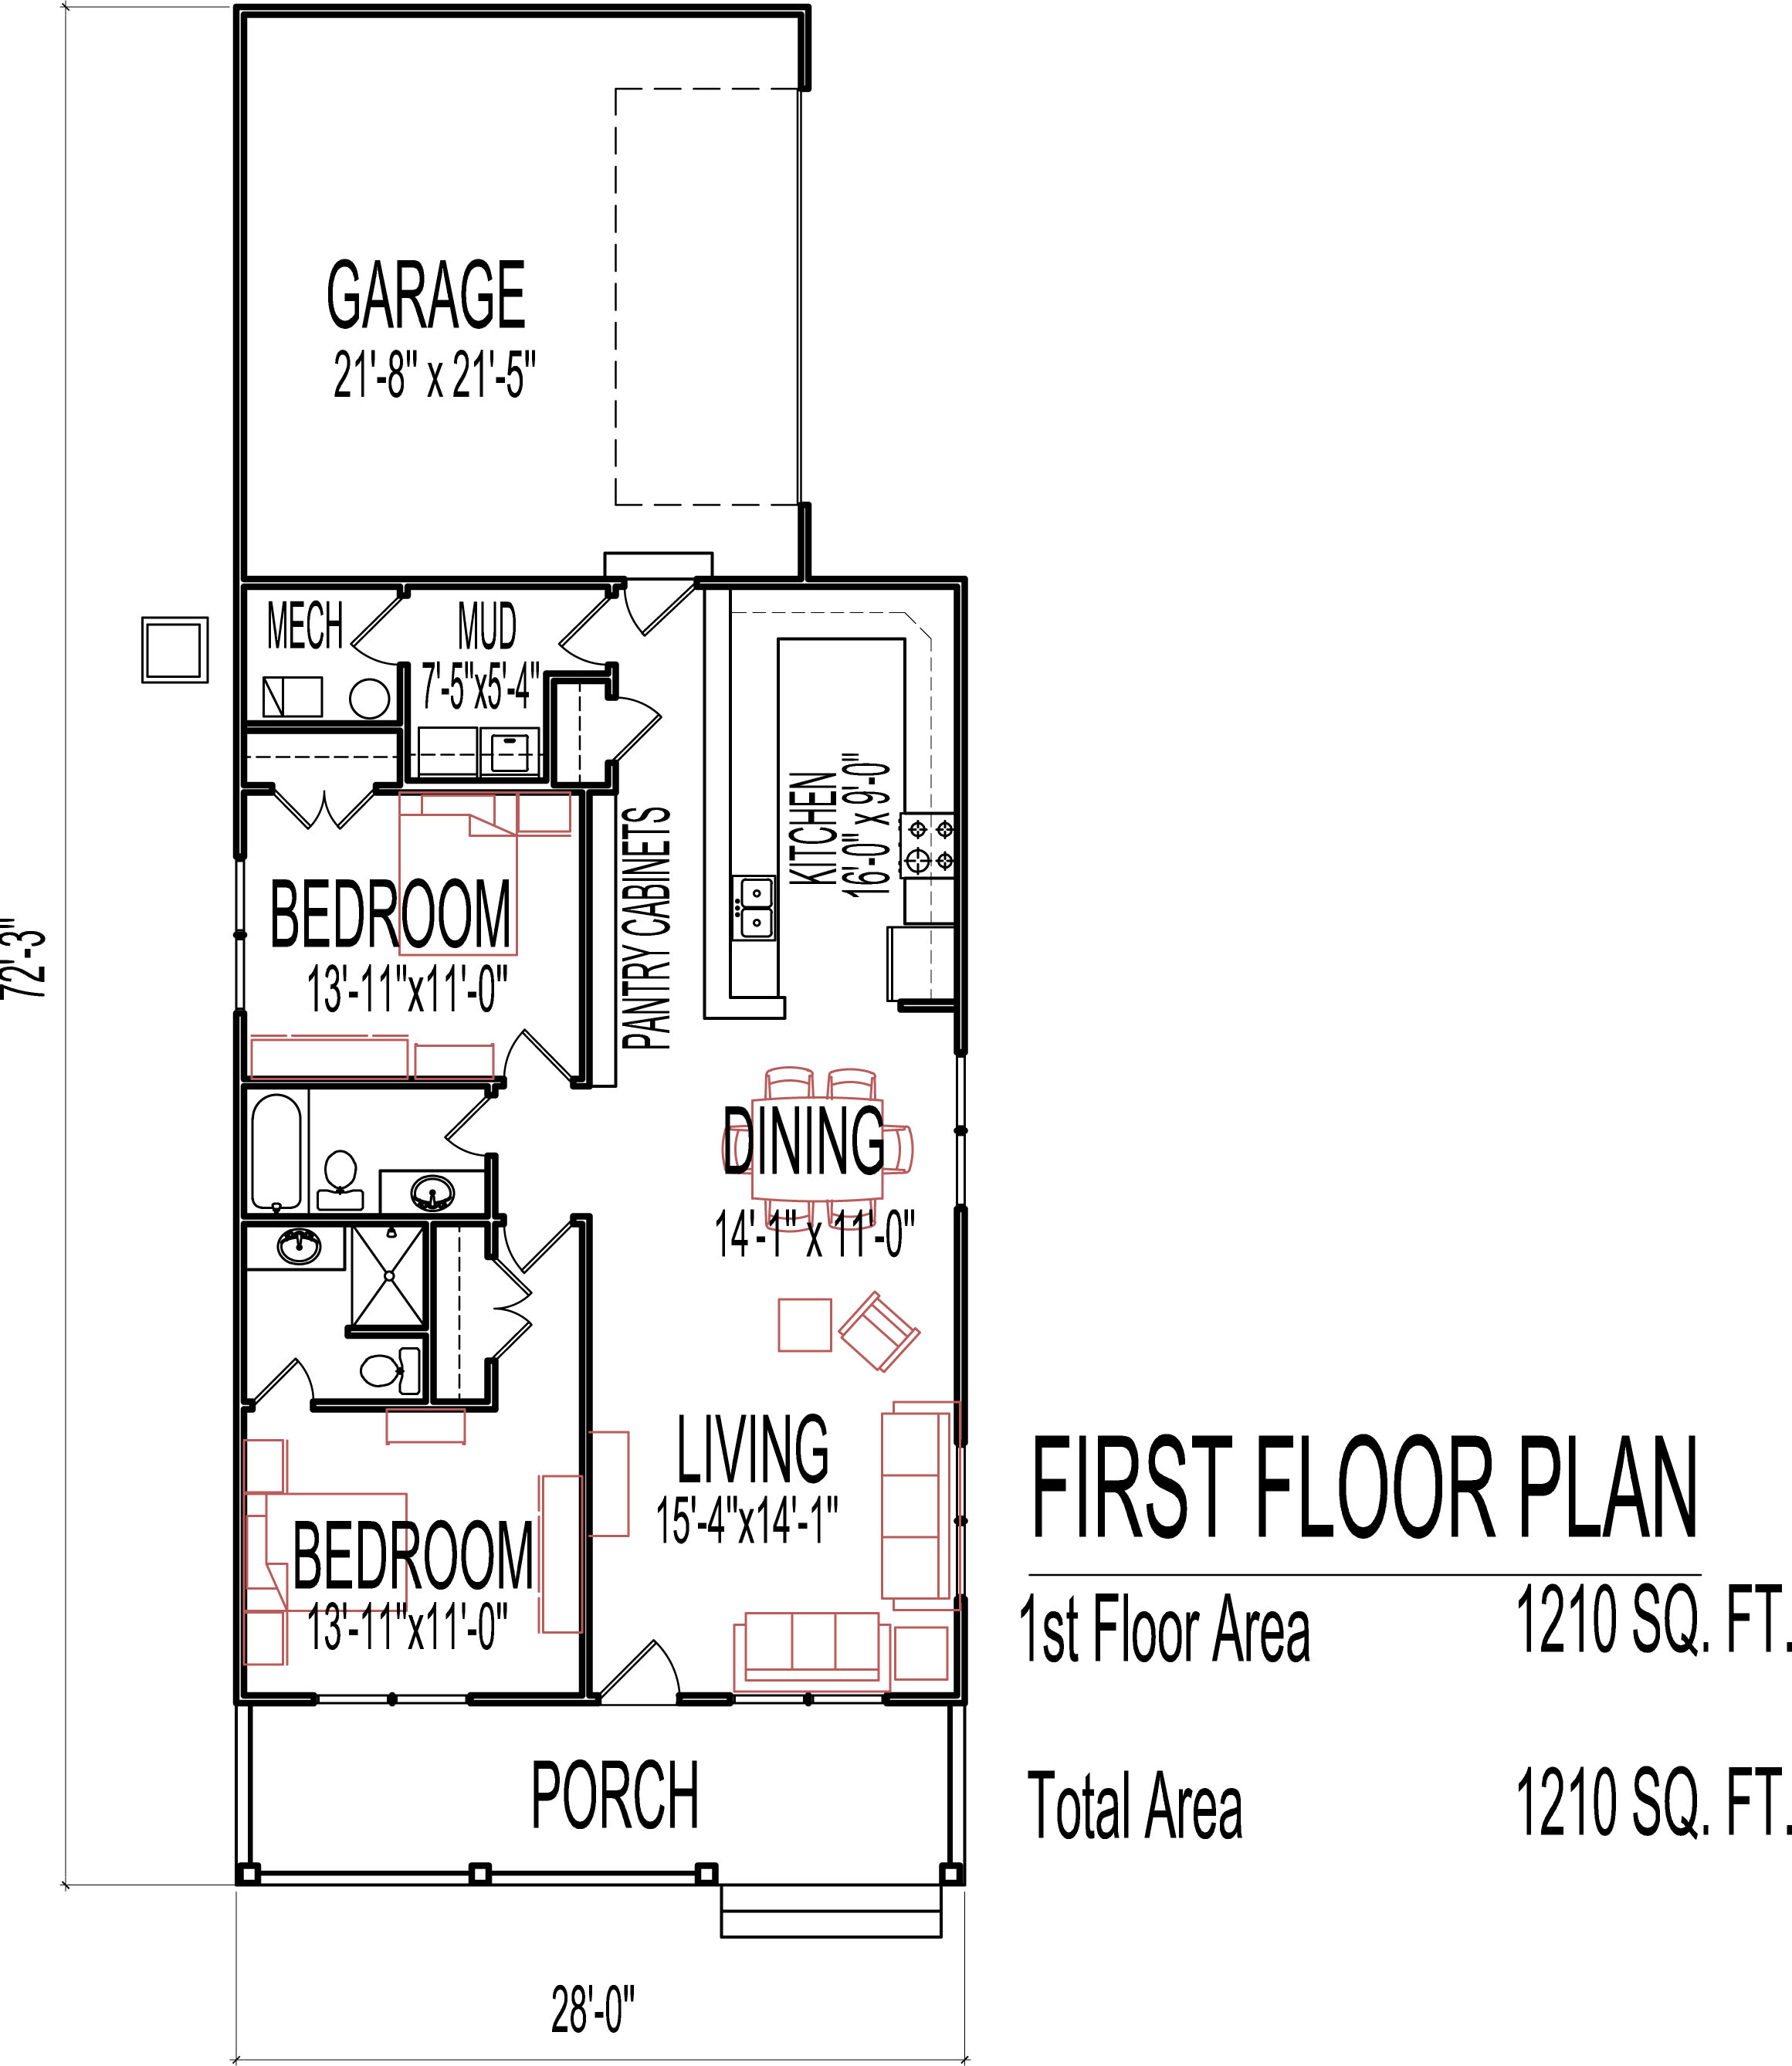 Small two bedroom house plans low cost 1200 sq ft one for One story two bedroom house plans